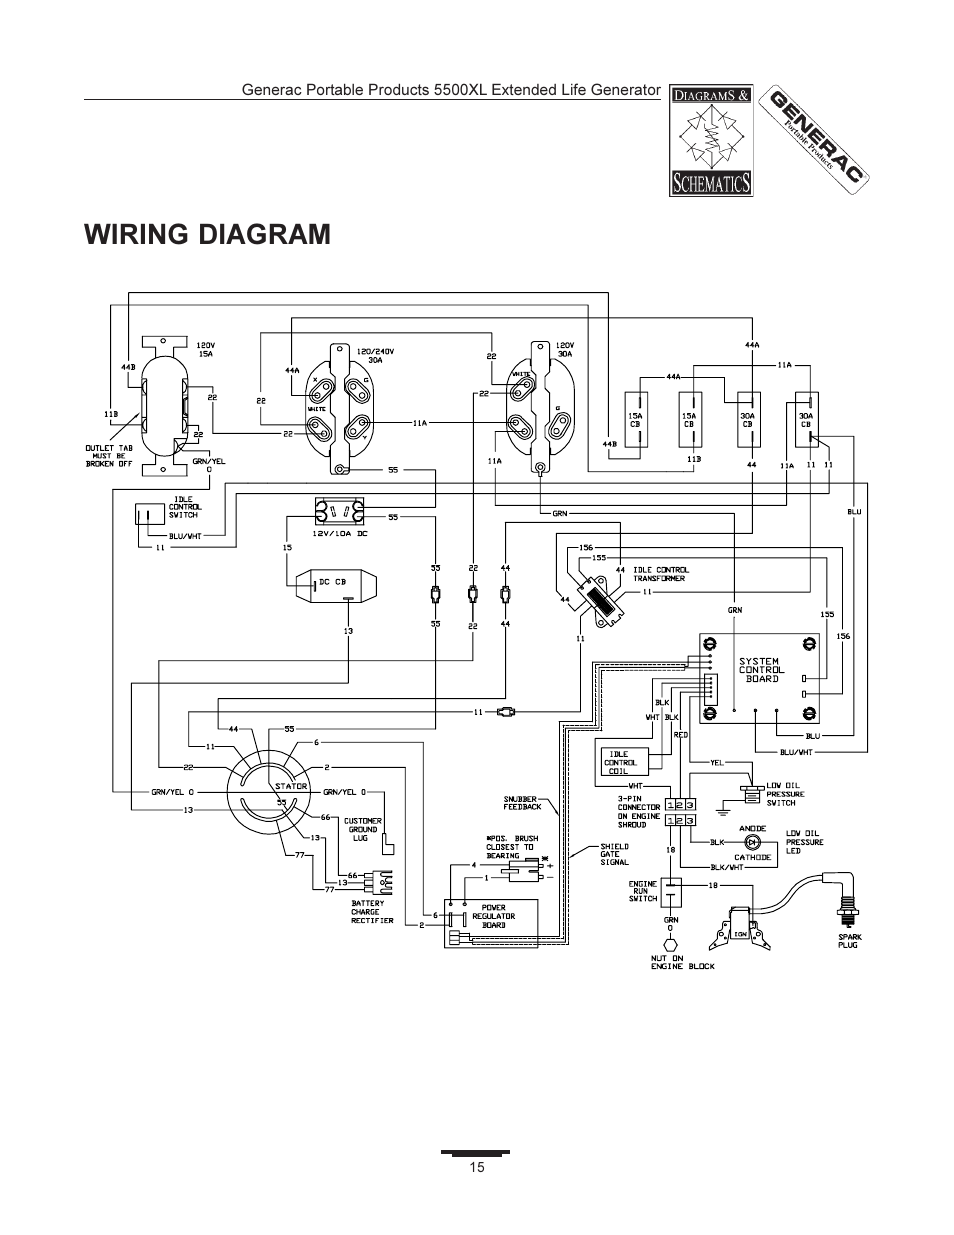 wiring diagram | generac 5500xl user manual | page 15 / 18 pioneer deh 15 wiring diagram 15 wiring diagram #7